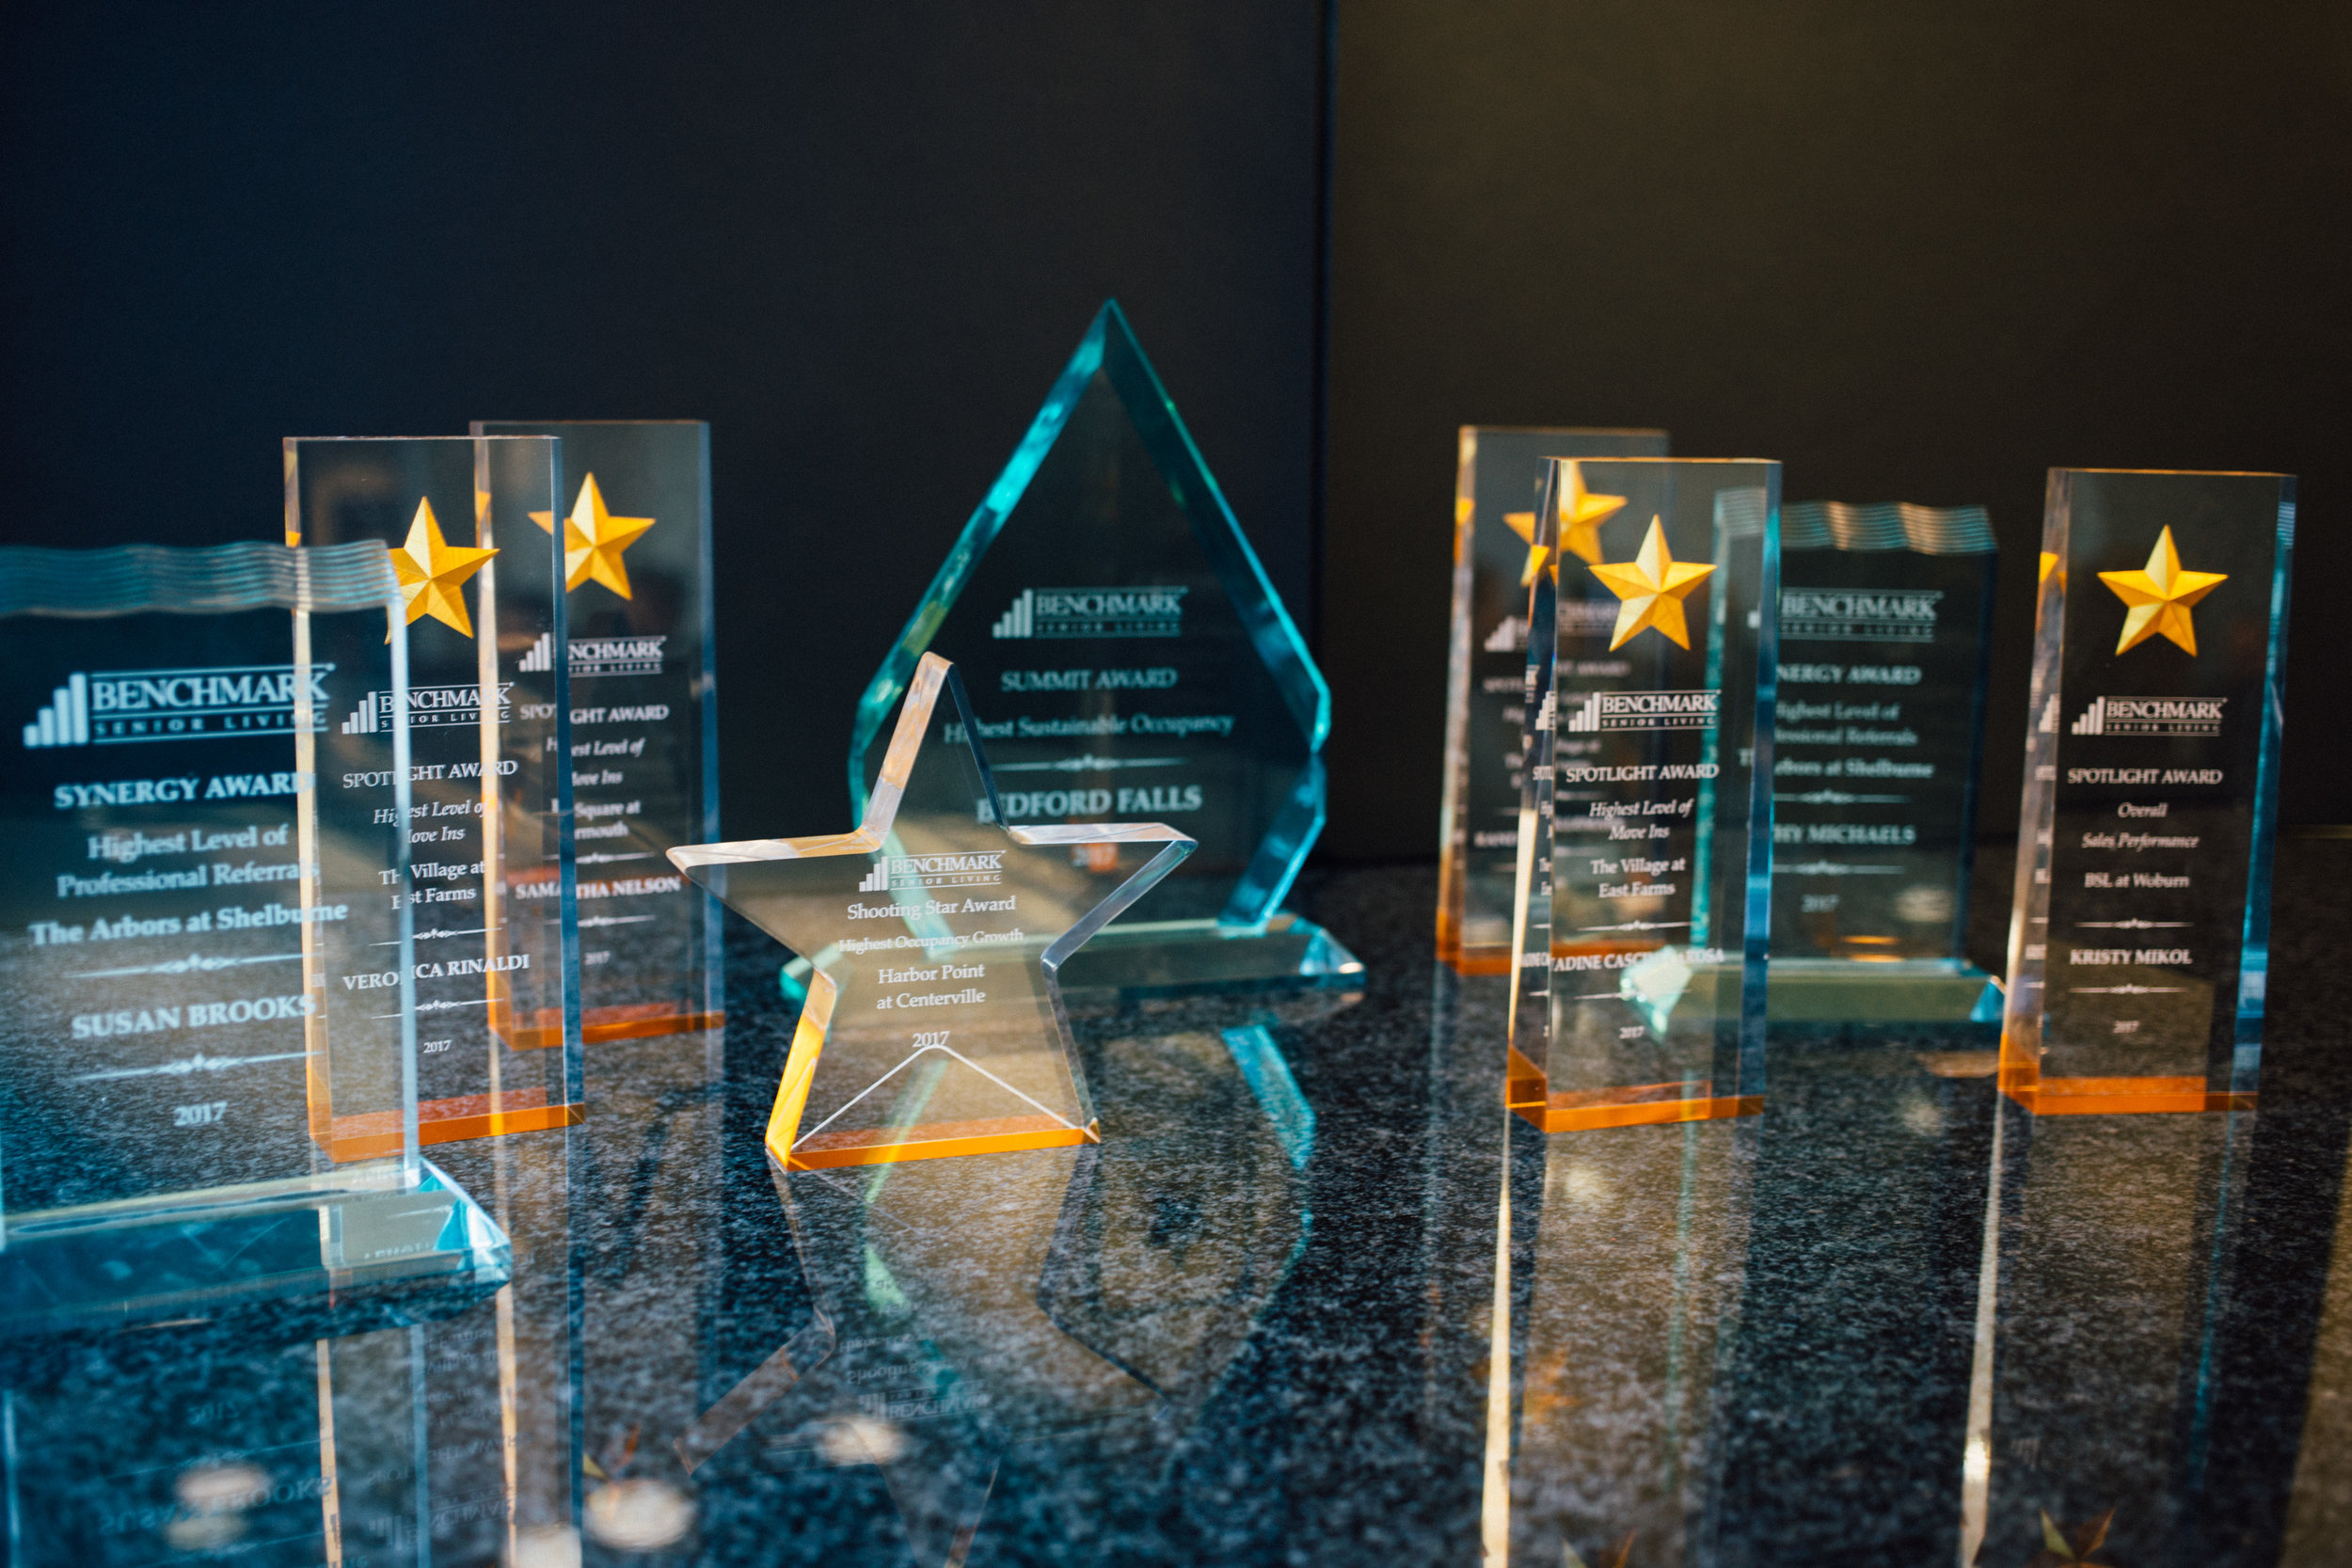 Congratulations to all of the Benchmark award winners!